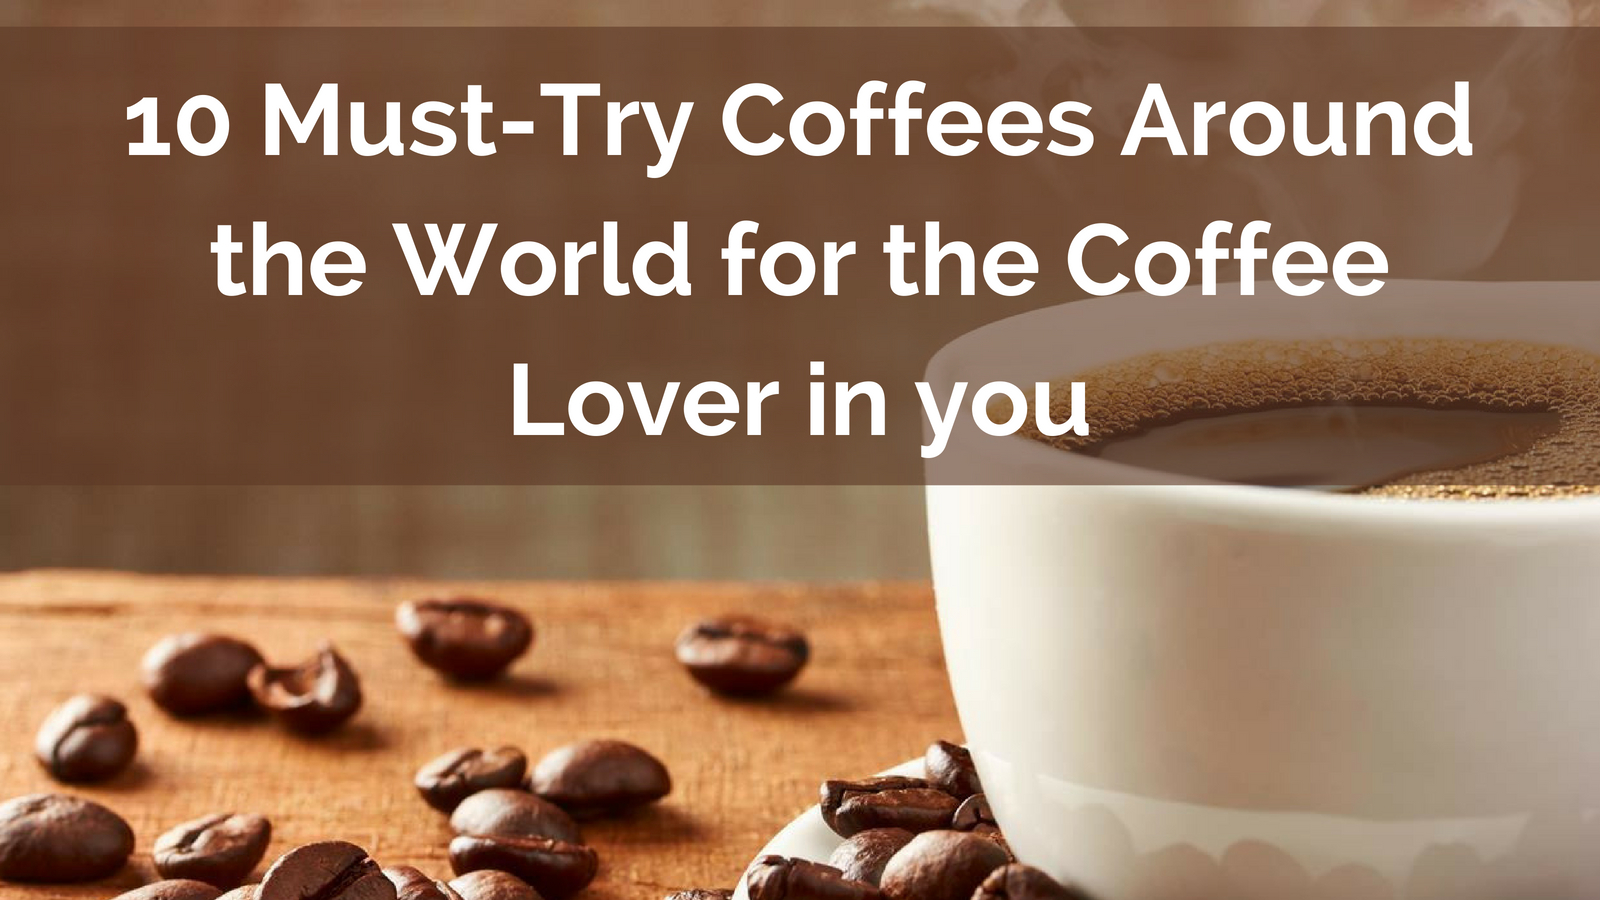 10 Must-Try Coffees Around the World for the Coffee Lover in you